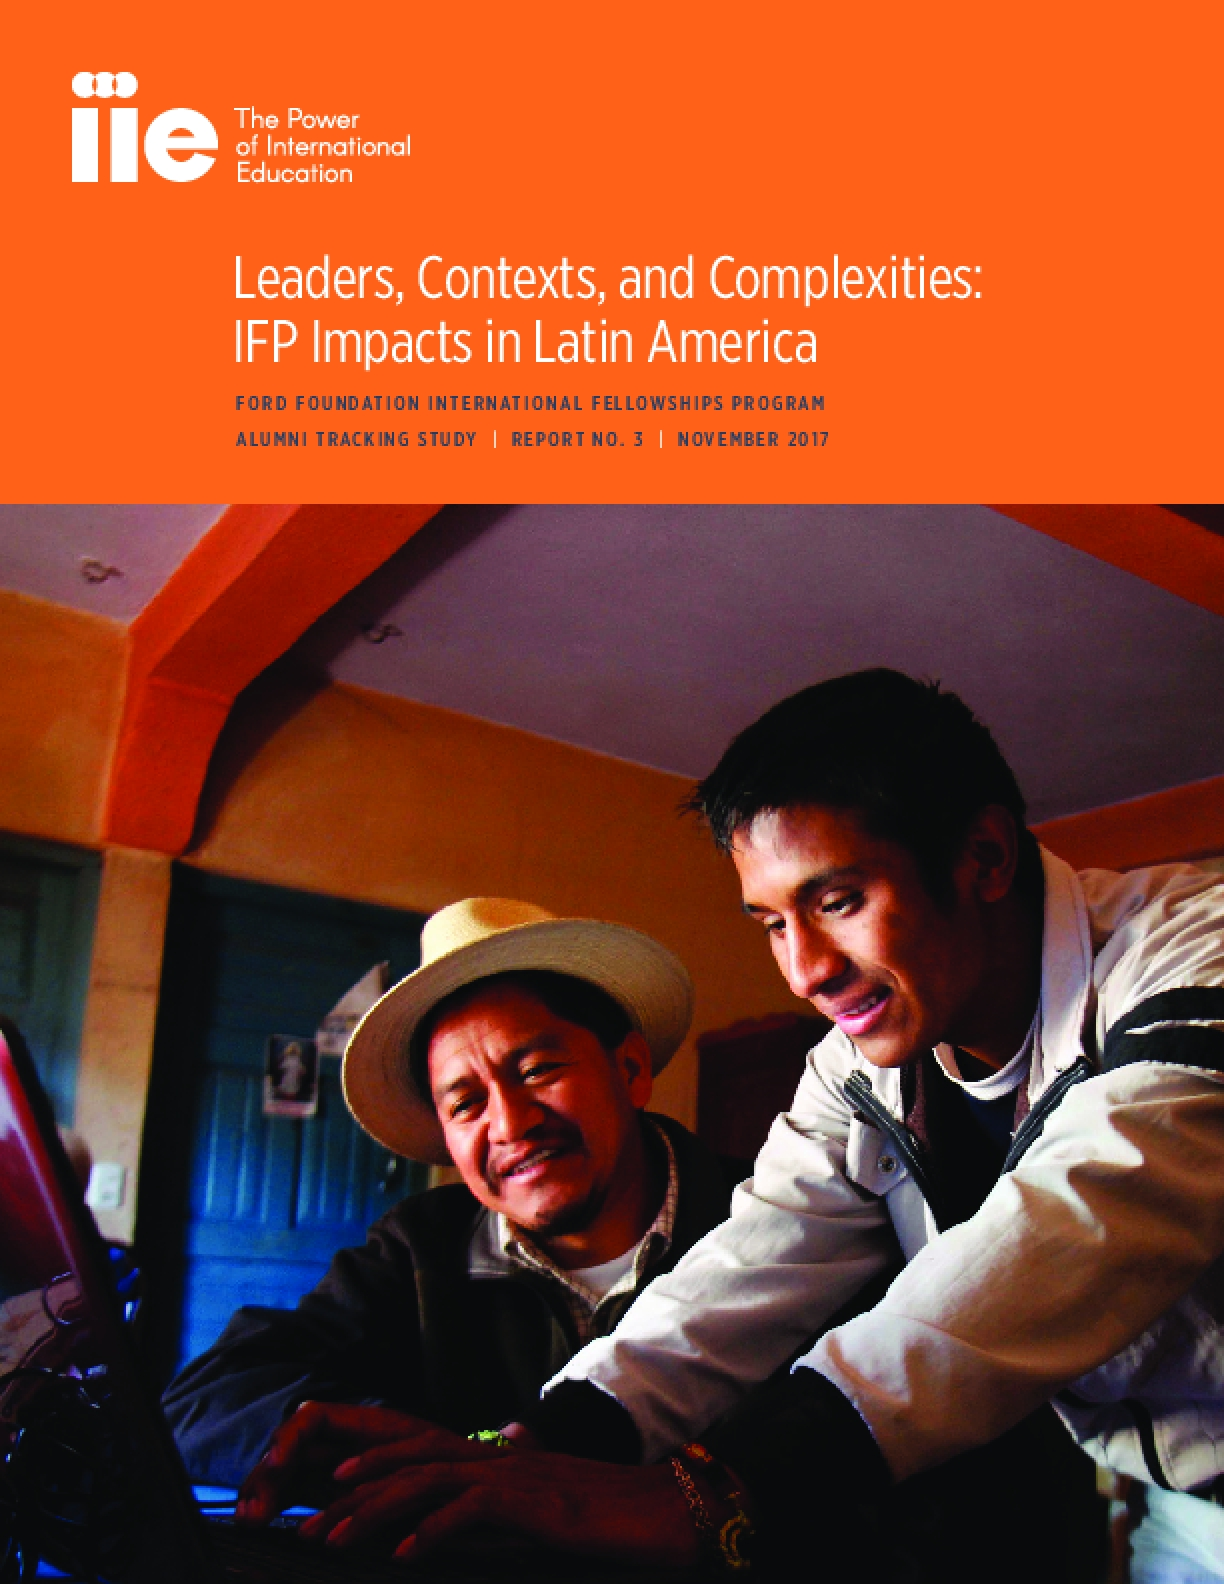 Leaders, Contexts, and Complexities: IFP Impacts in Latin America